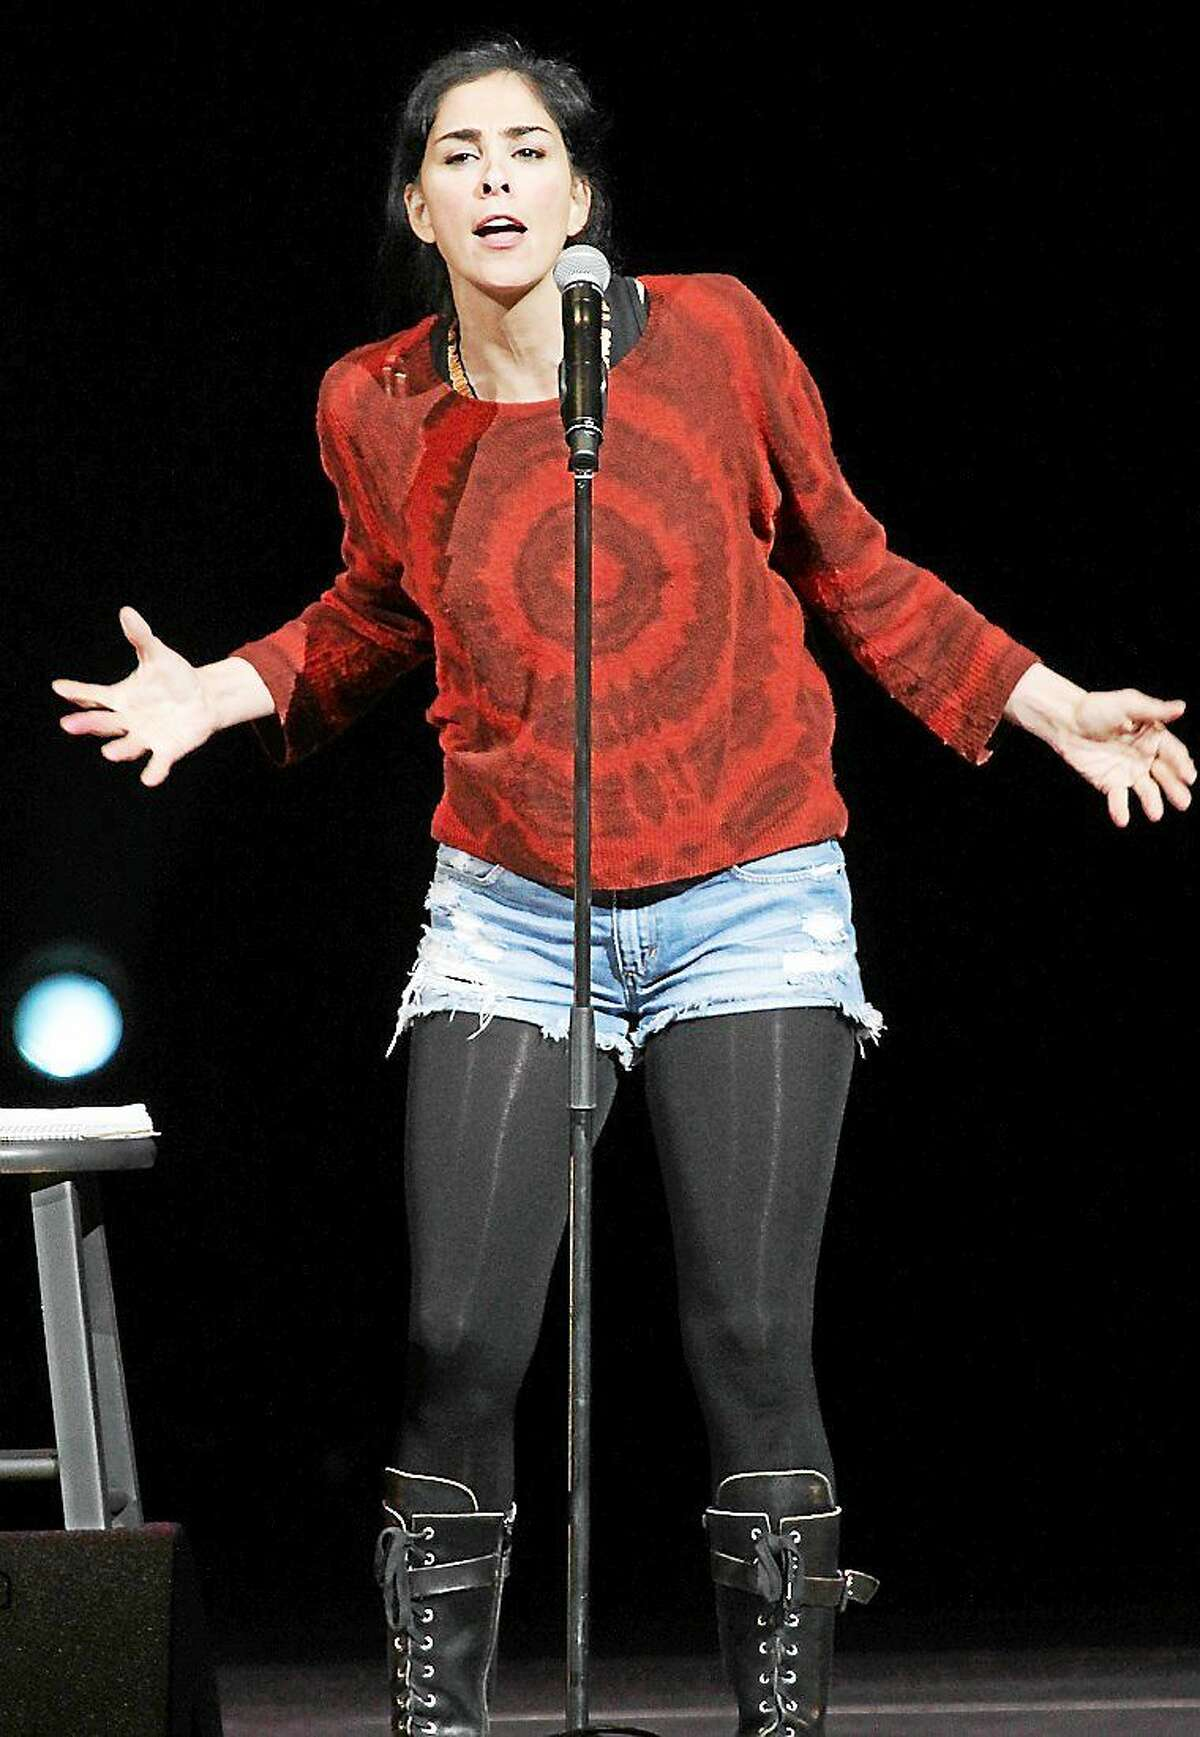 Photo by John Atashian Comedian and writer Sarah Silverman on stage at the Xfinity Theater during her stand-up act at the Oddball Comedy Festival Aug. 23.